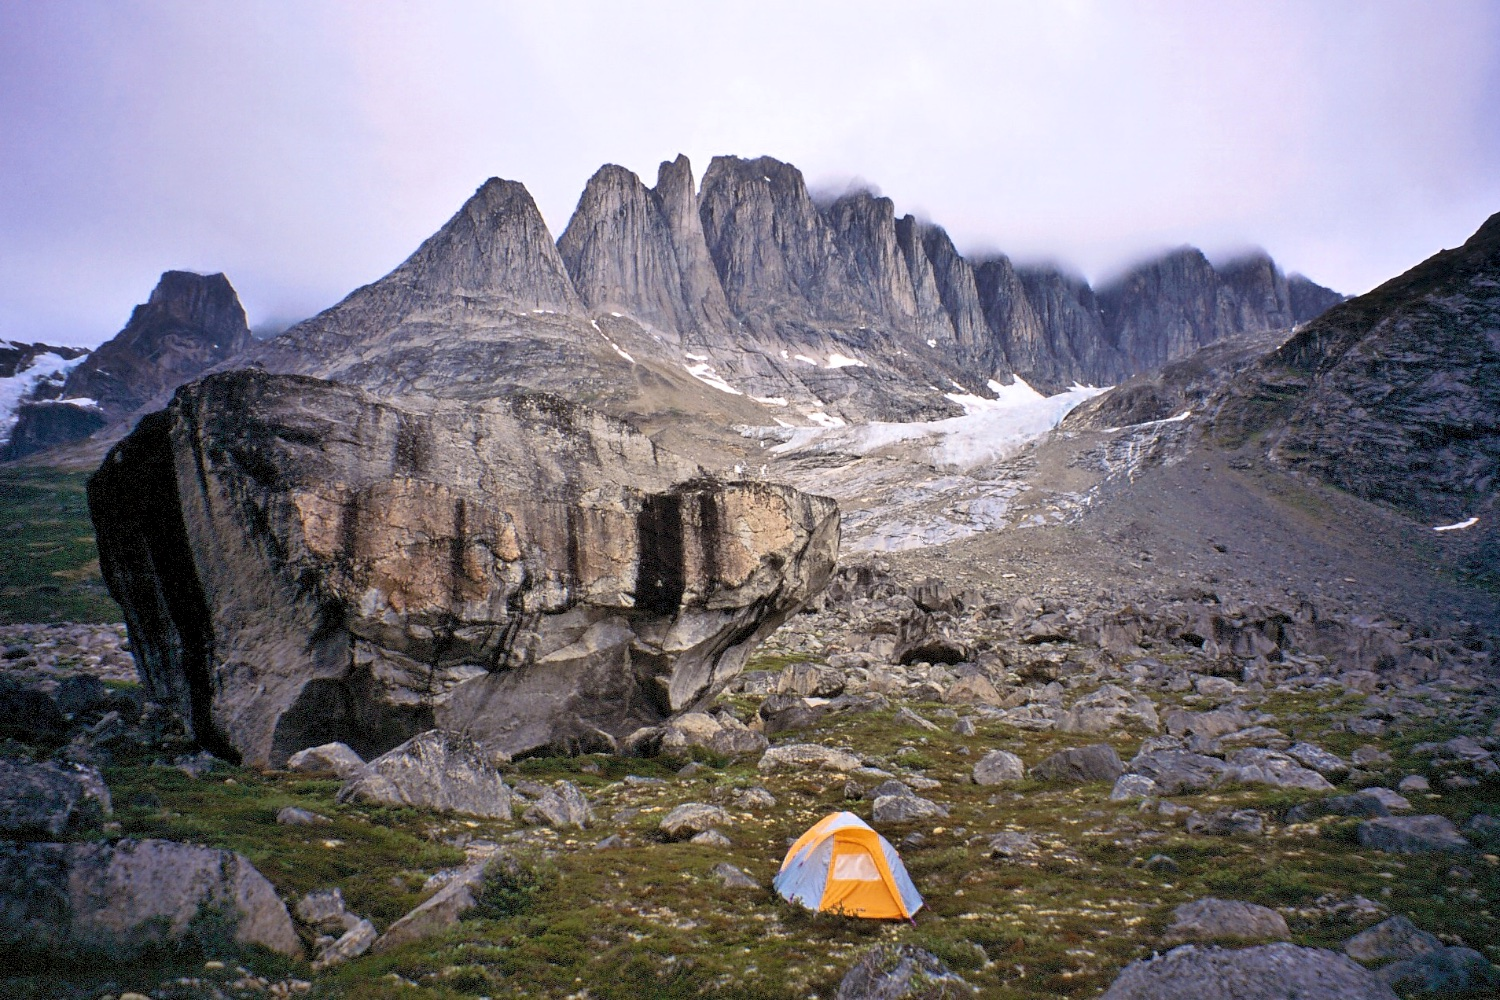 Our camp below the Fox Jaw Cirque